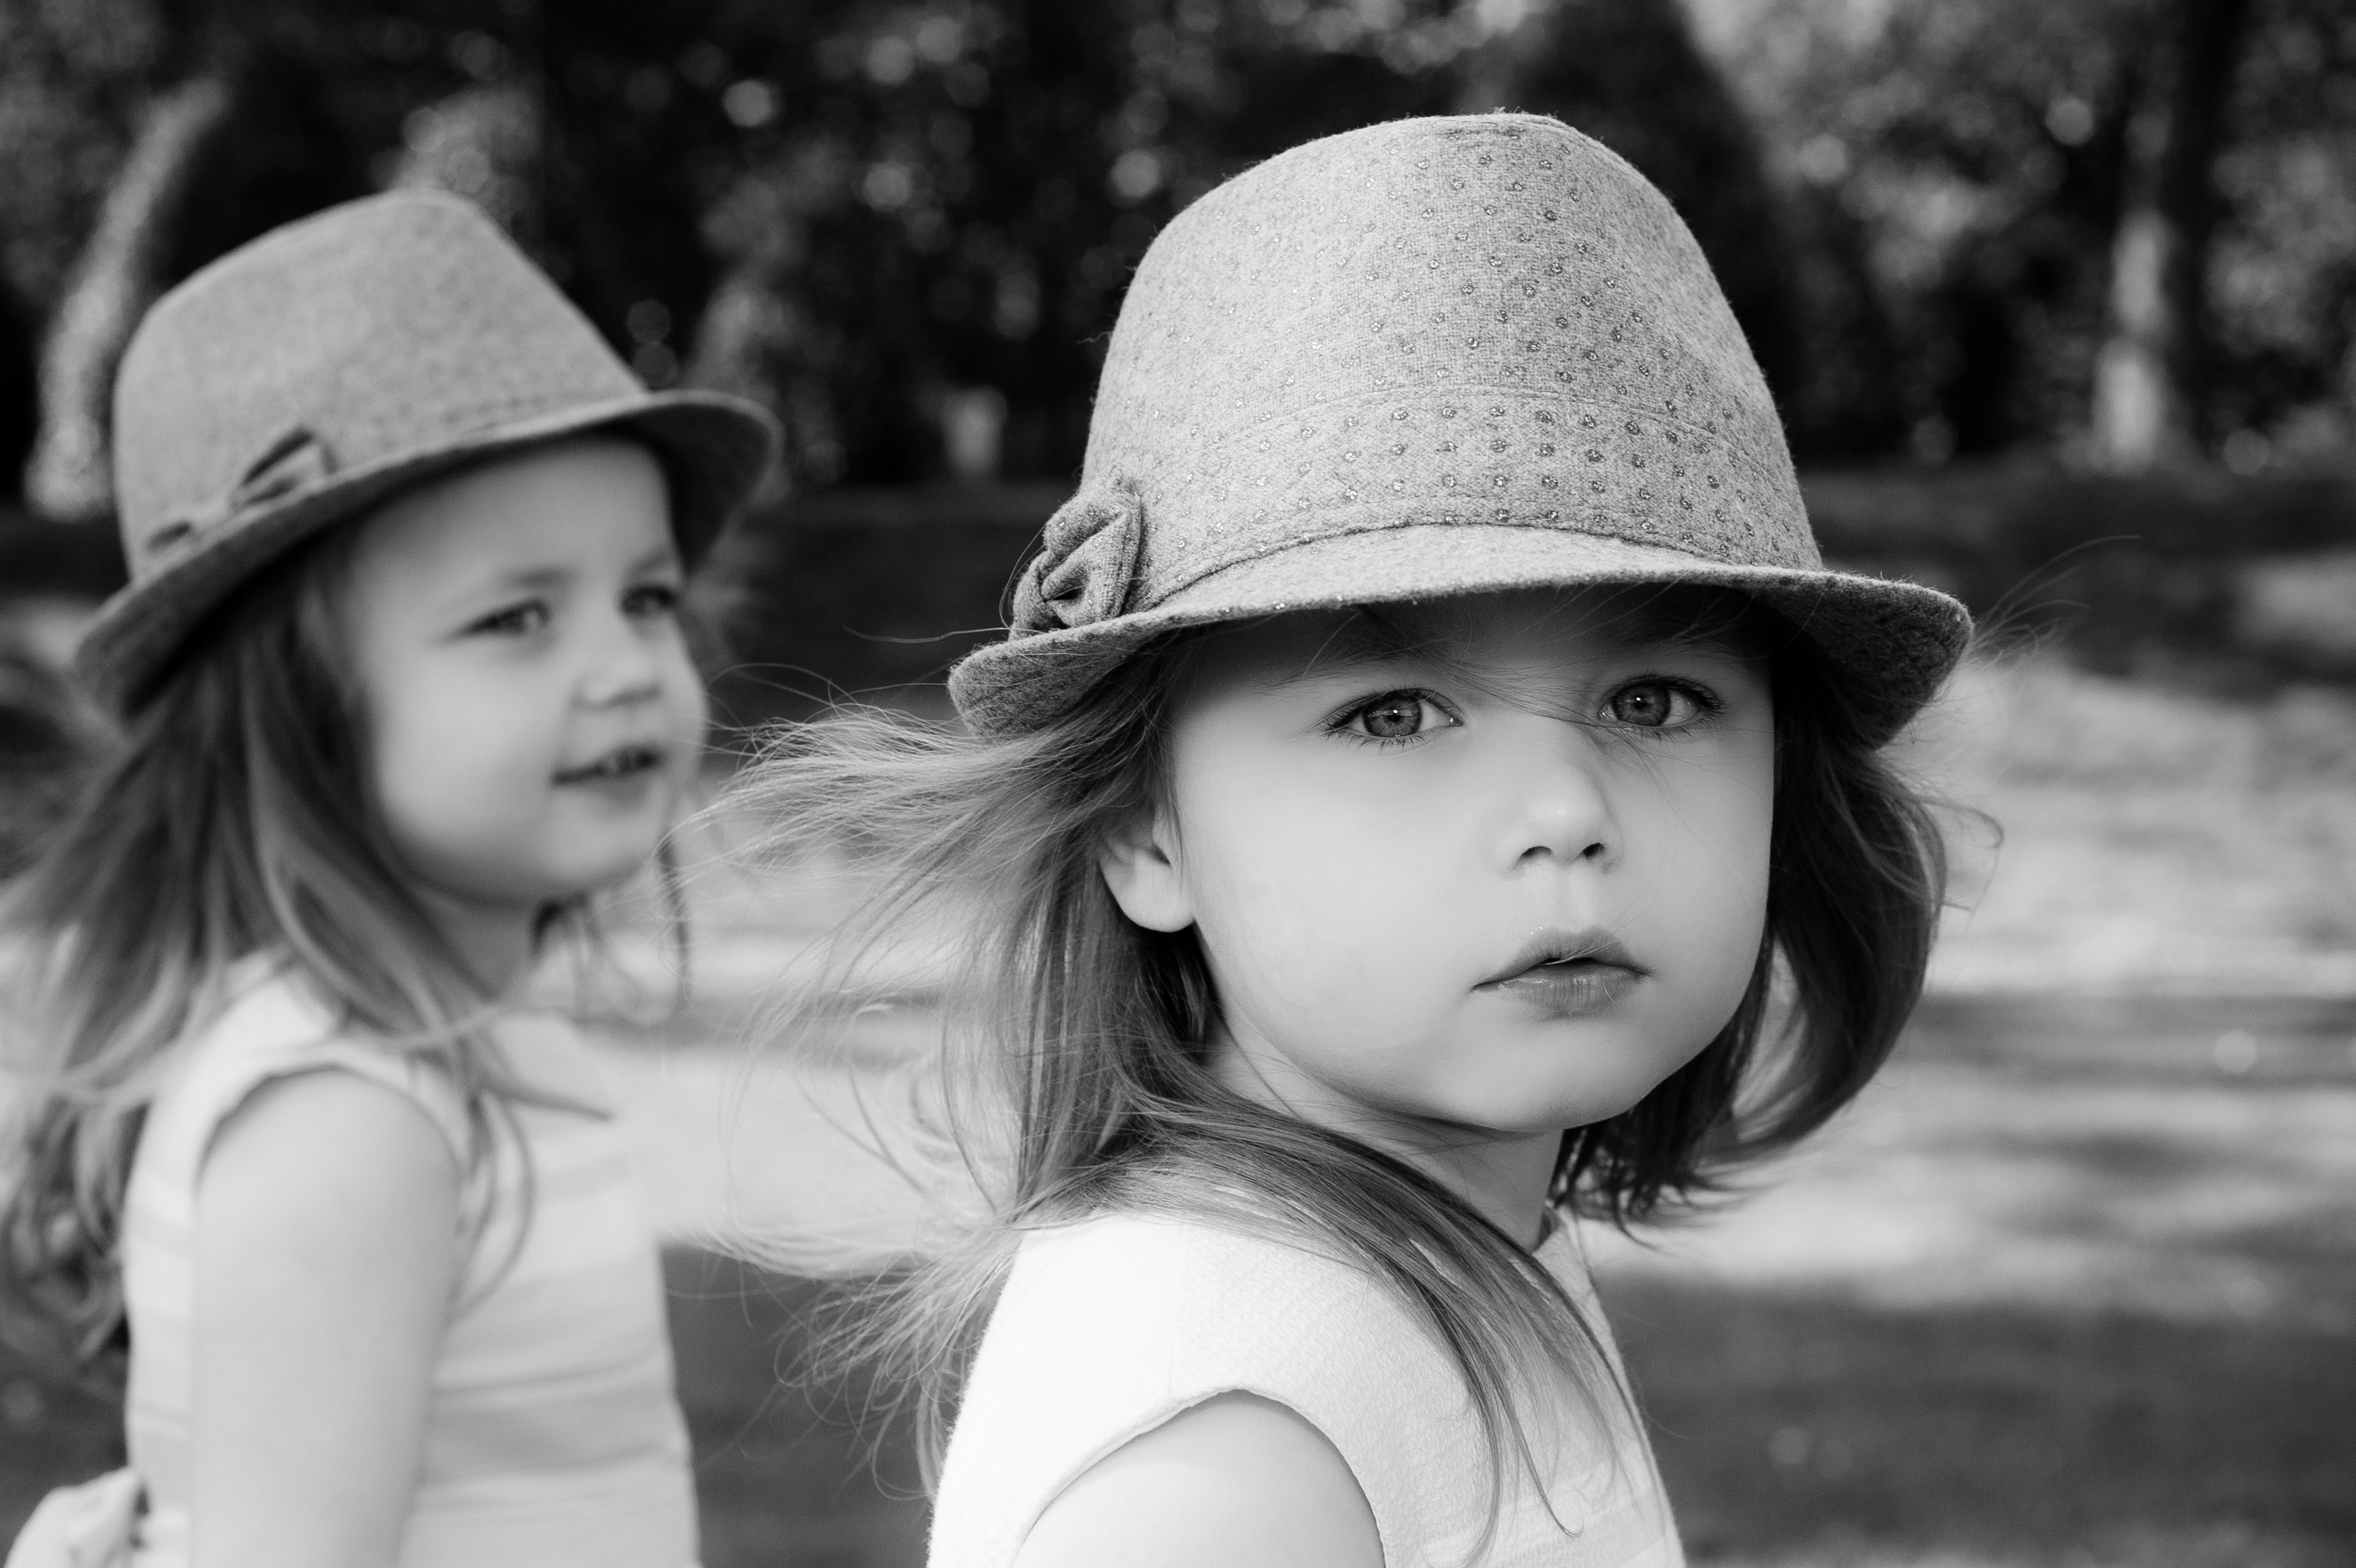 Children's Portrait and Family photography shot in Bangor, Northern Ireland